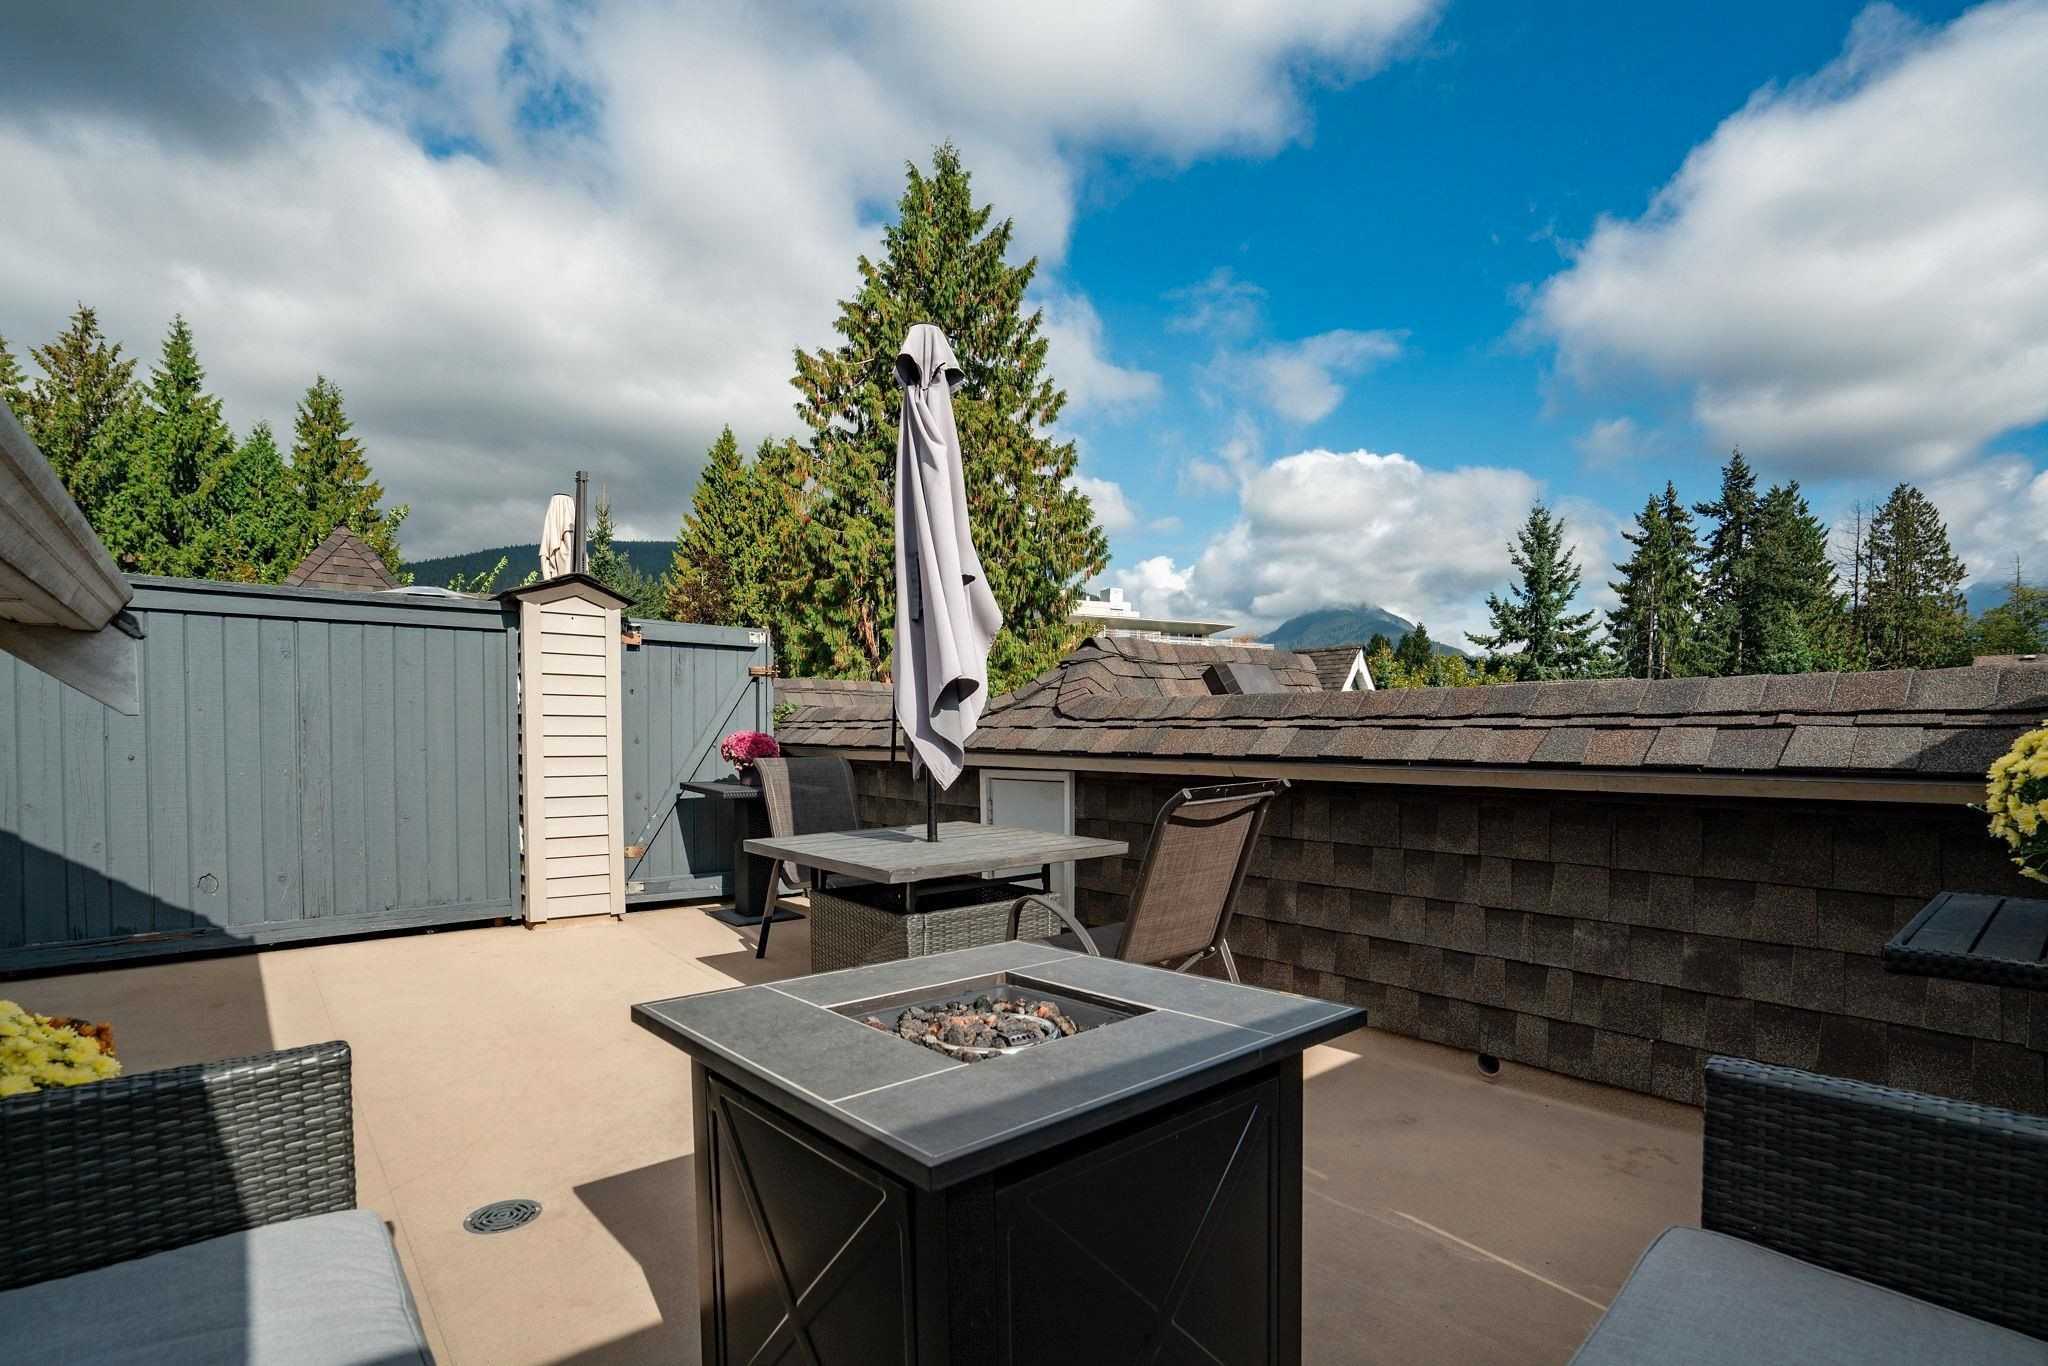 """Main Photo: 9 1027 LYNN VALLEY Road in North Vancouver: Lynn Valley Townhouse for sale in """"RIVER ROCK"""" : MLS®# R2621283"""